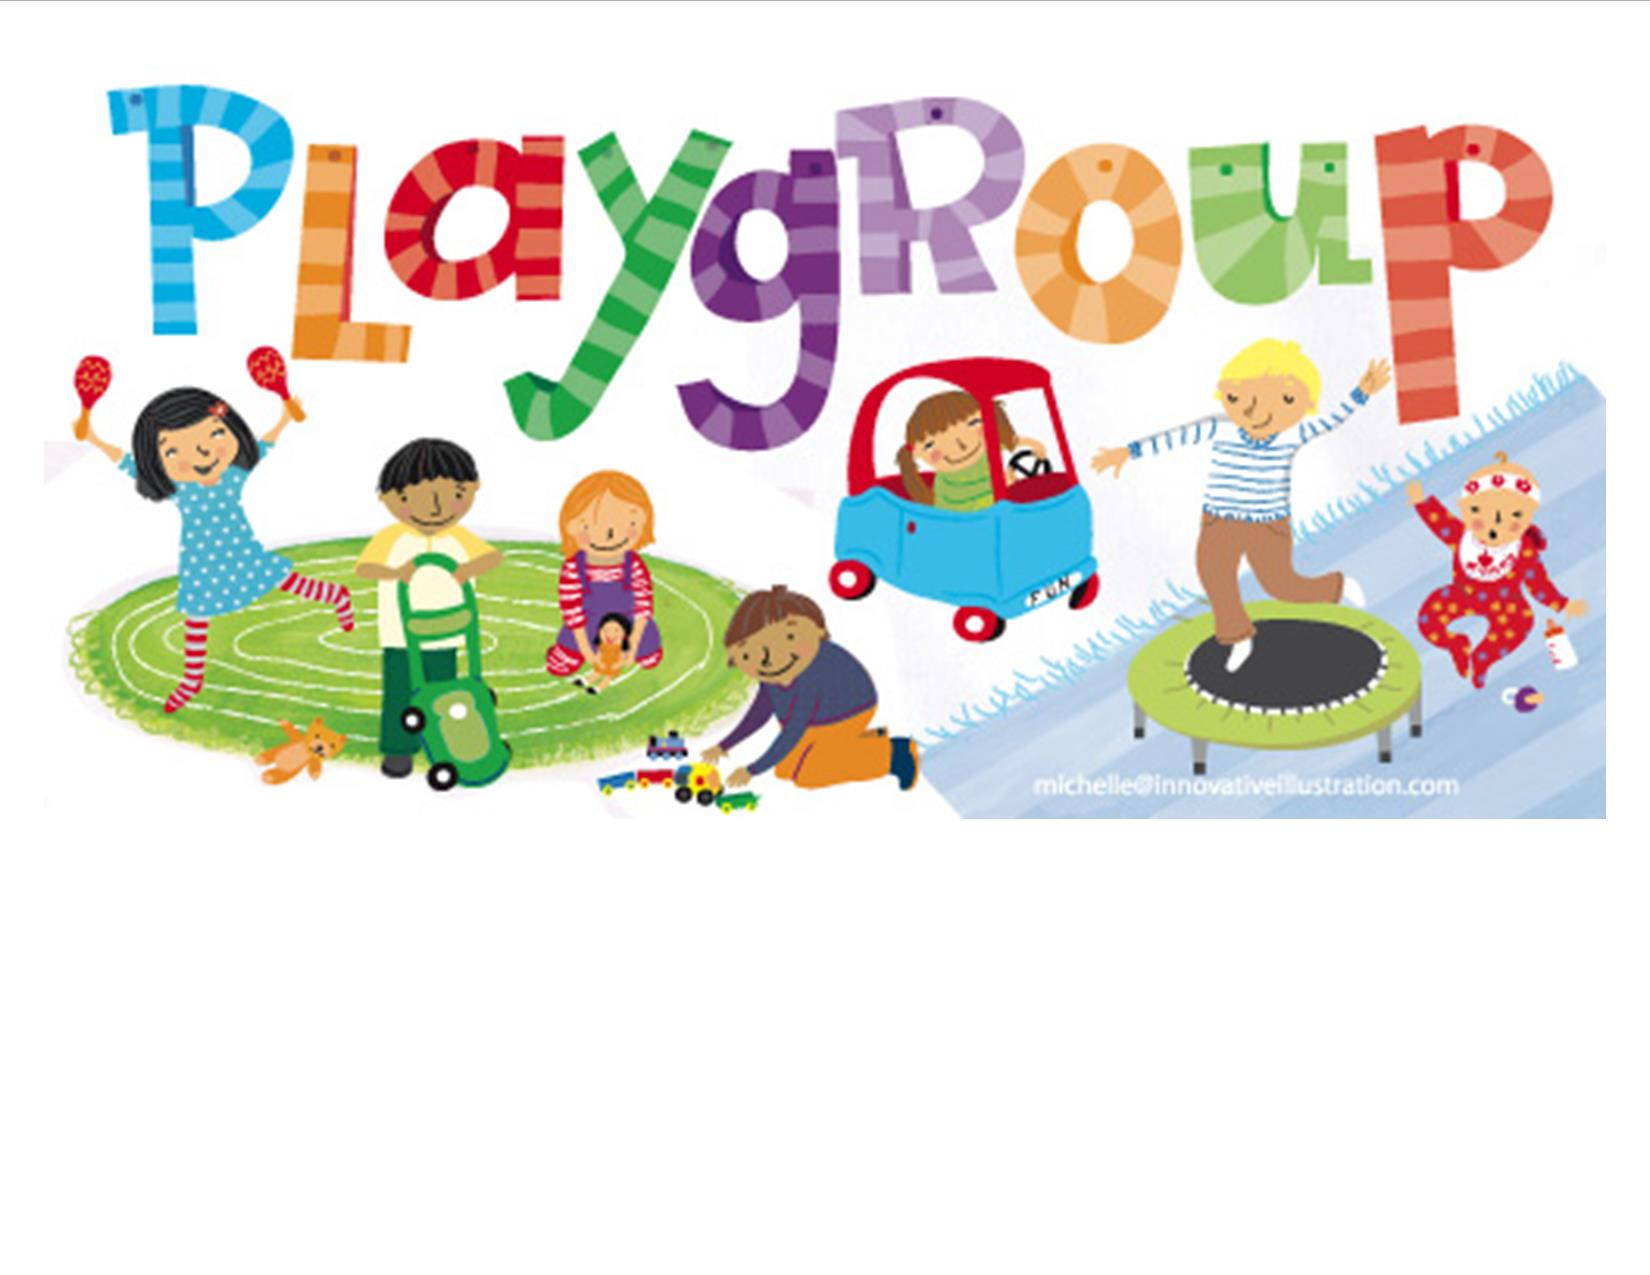 Clipart playgroup png free stock Library Playgroup png free stock